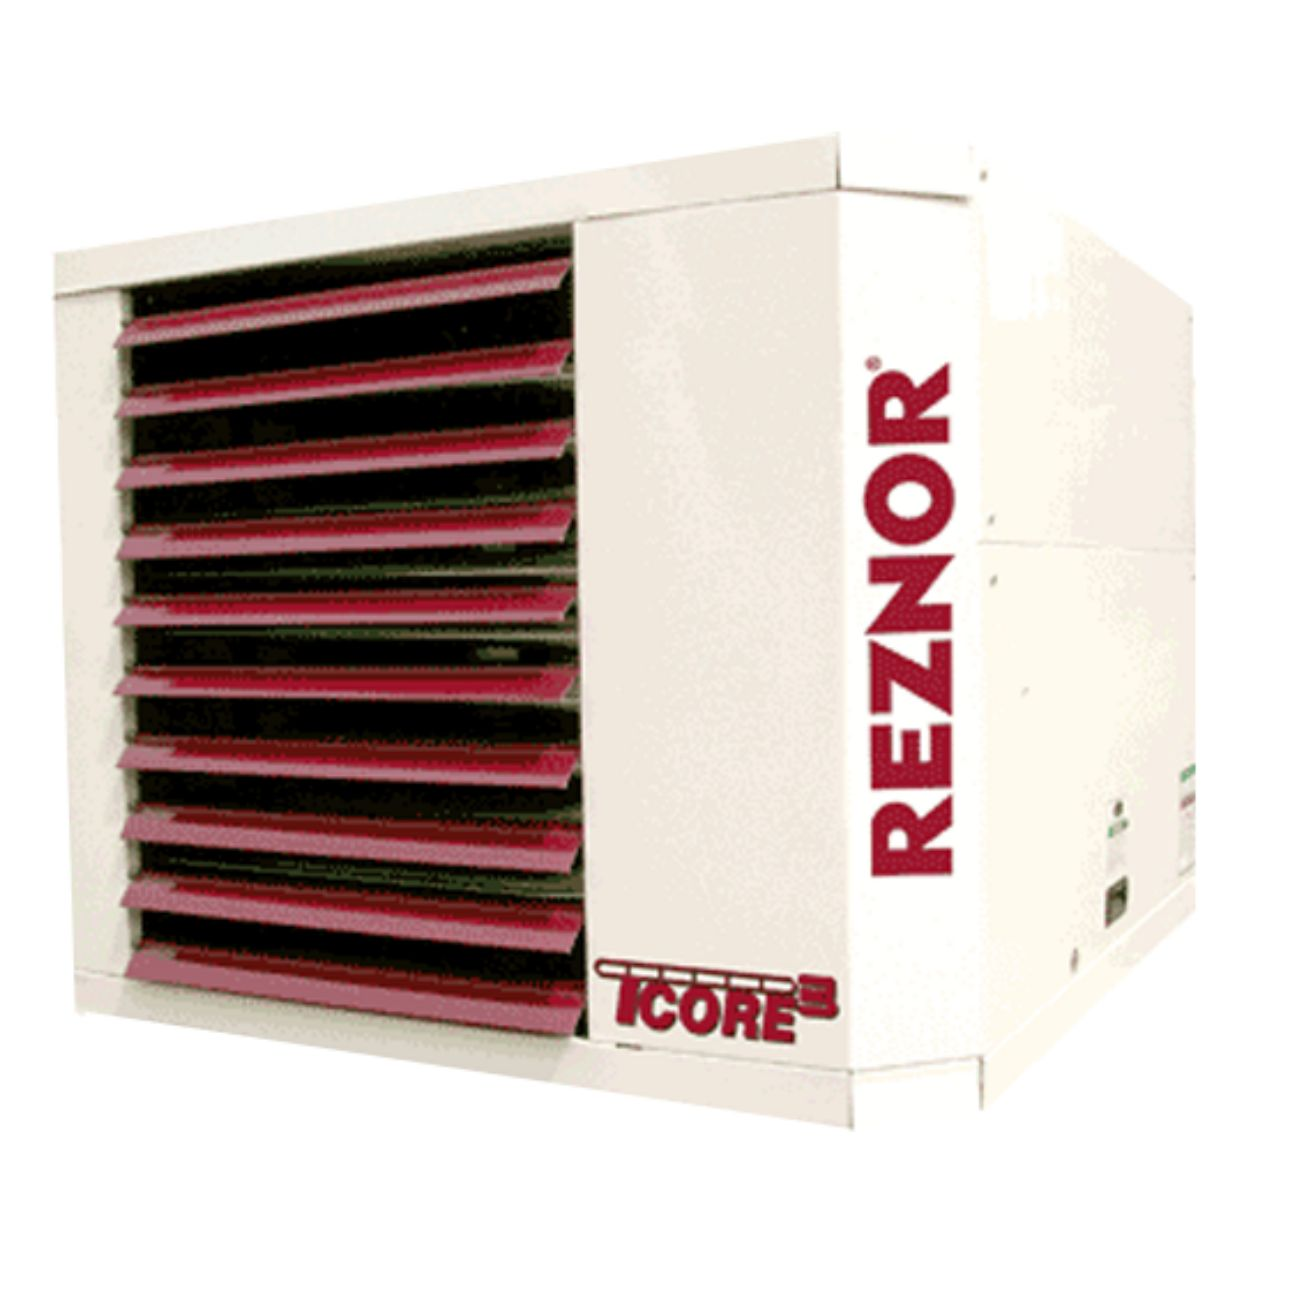 house reznor garage heaters heater photos natural gas ideas